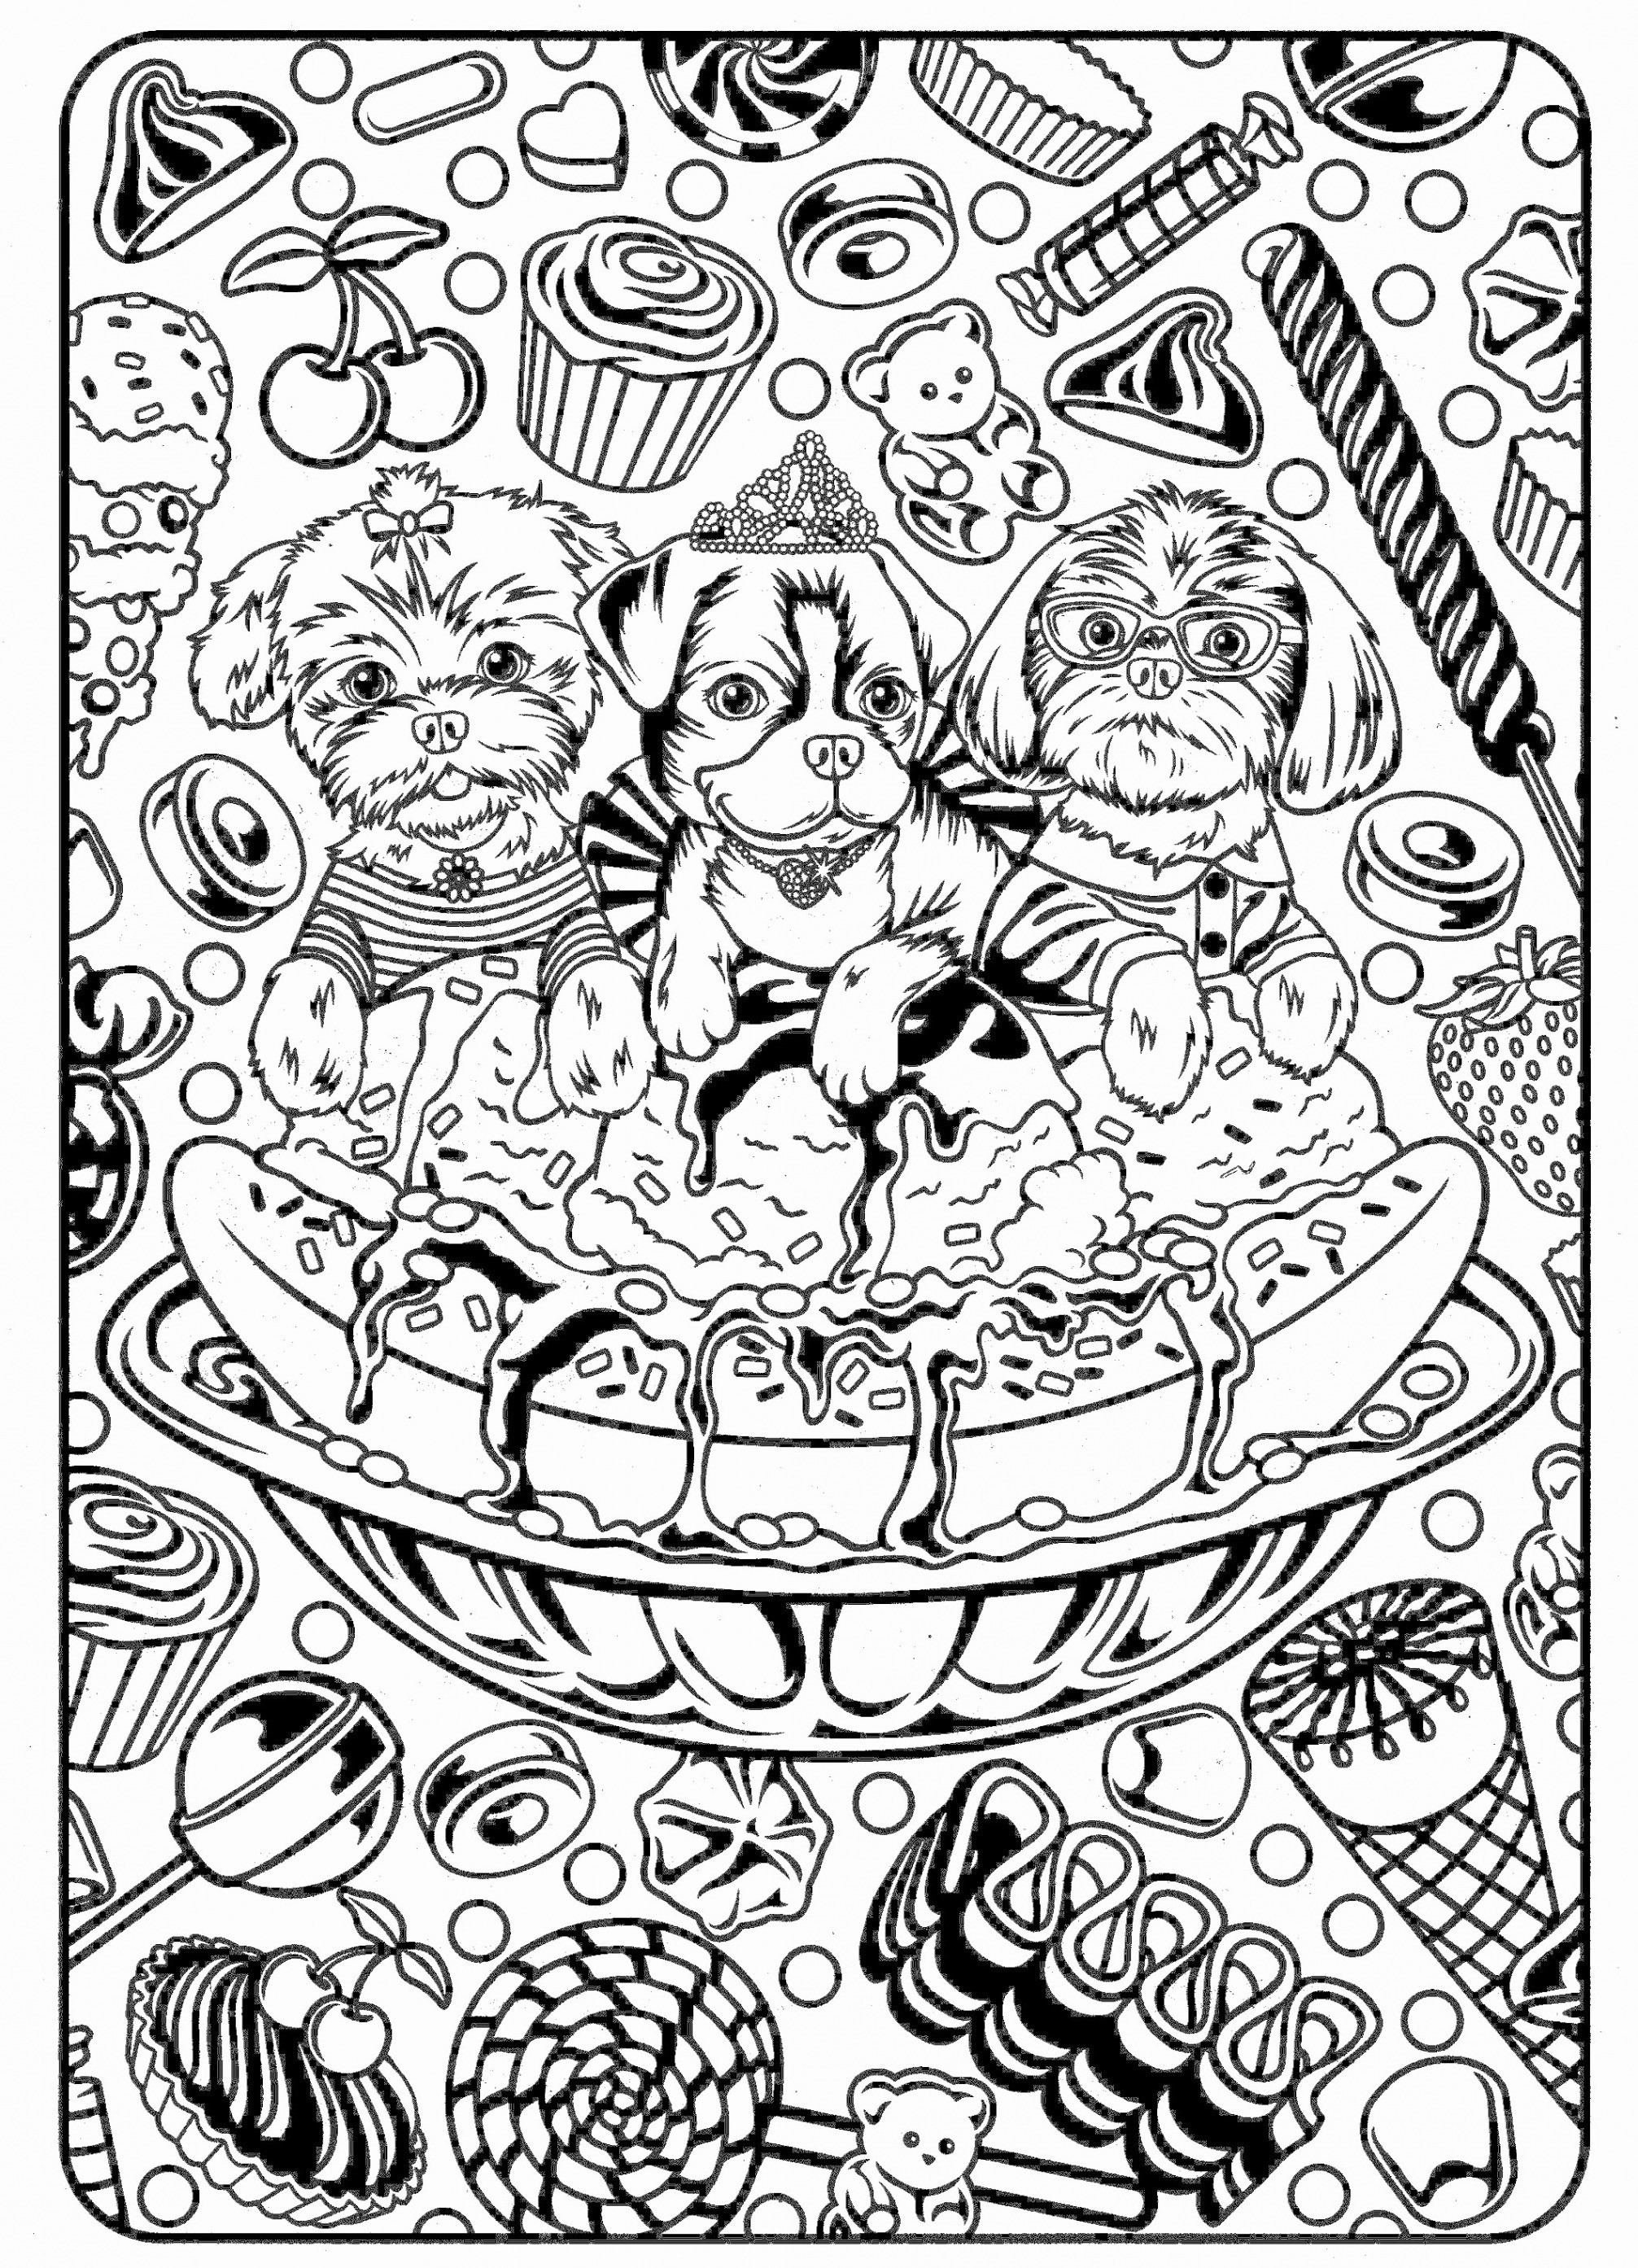 Christmas Coloring Patterns With Shopping Online For Cute New Free